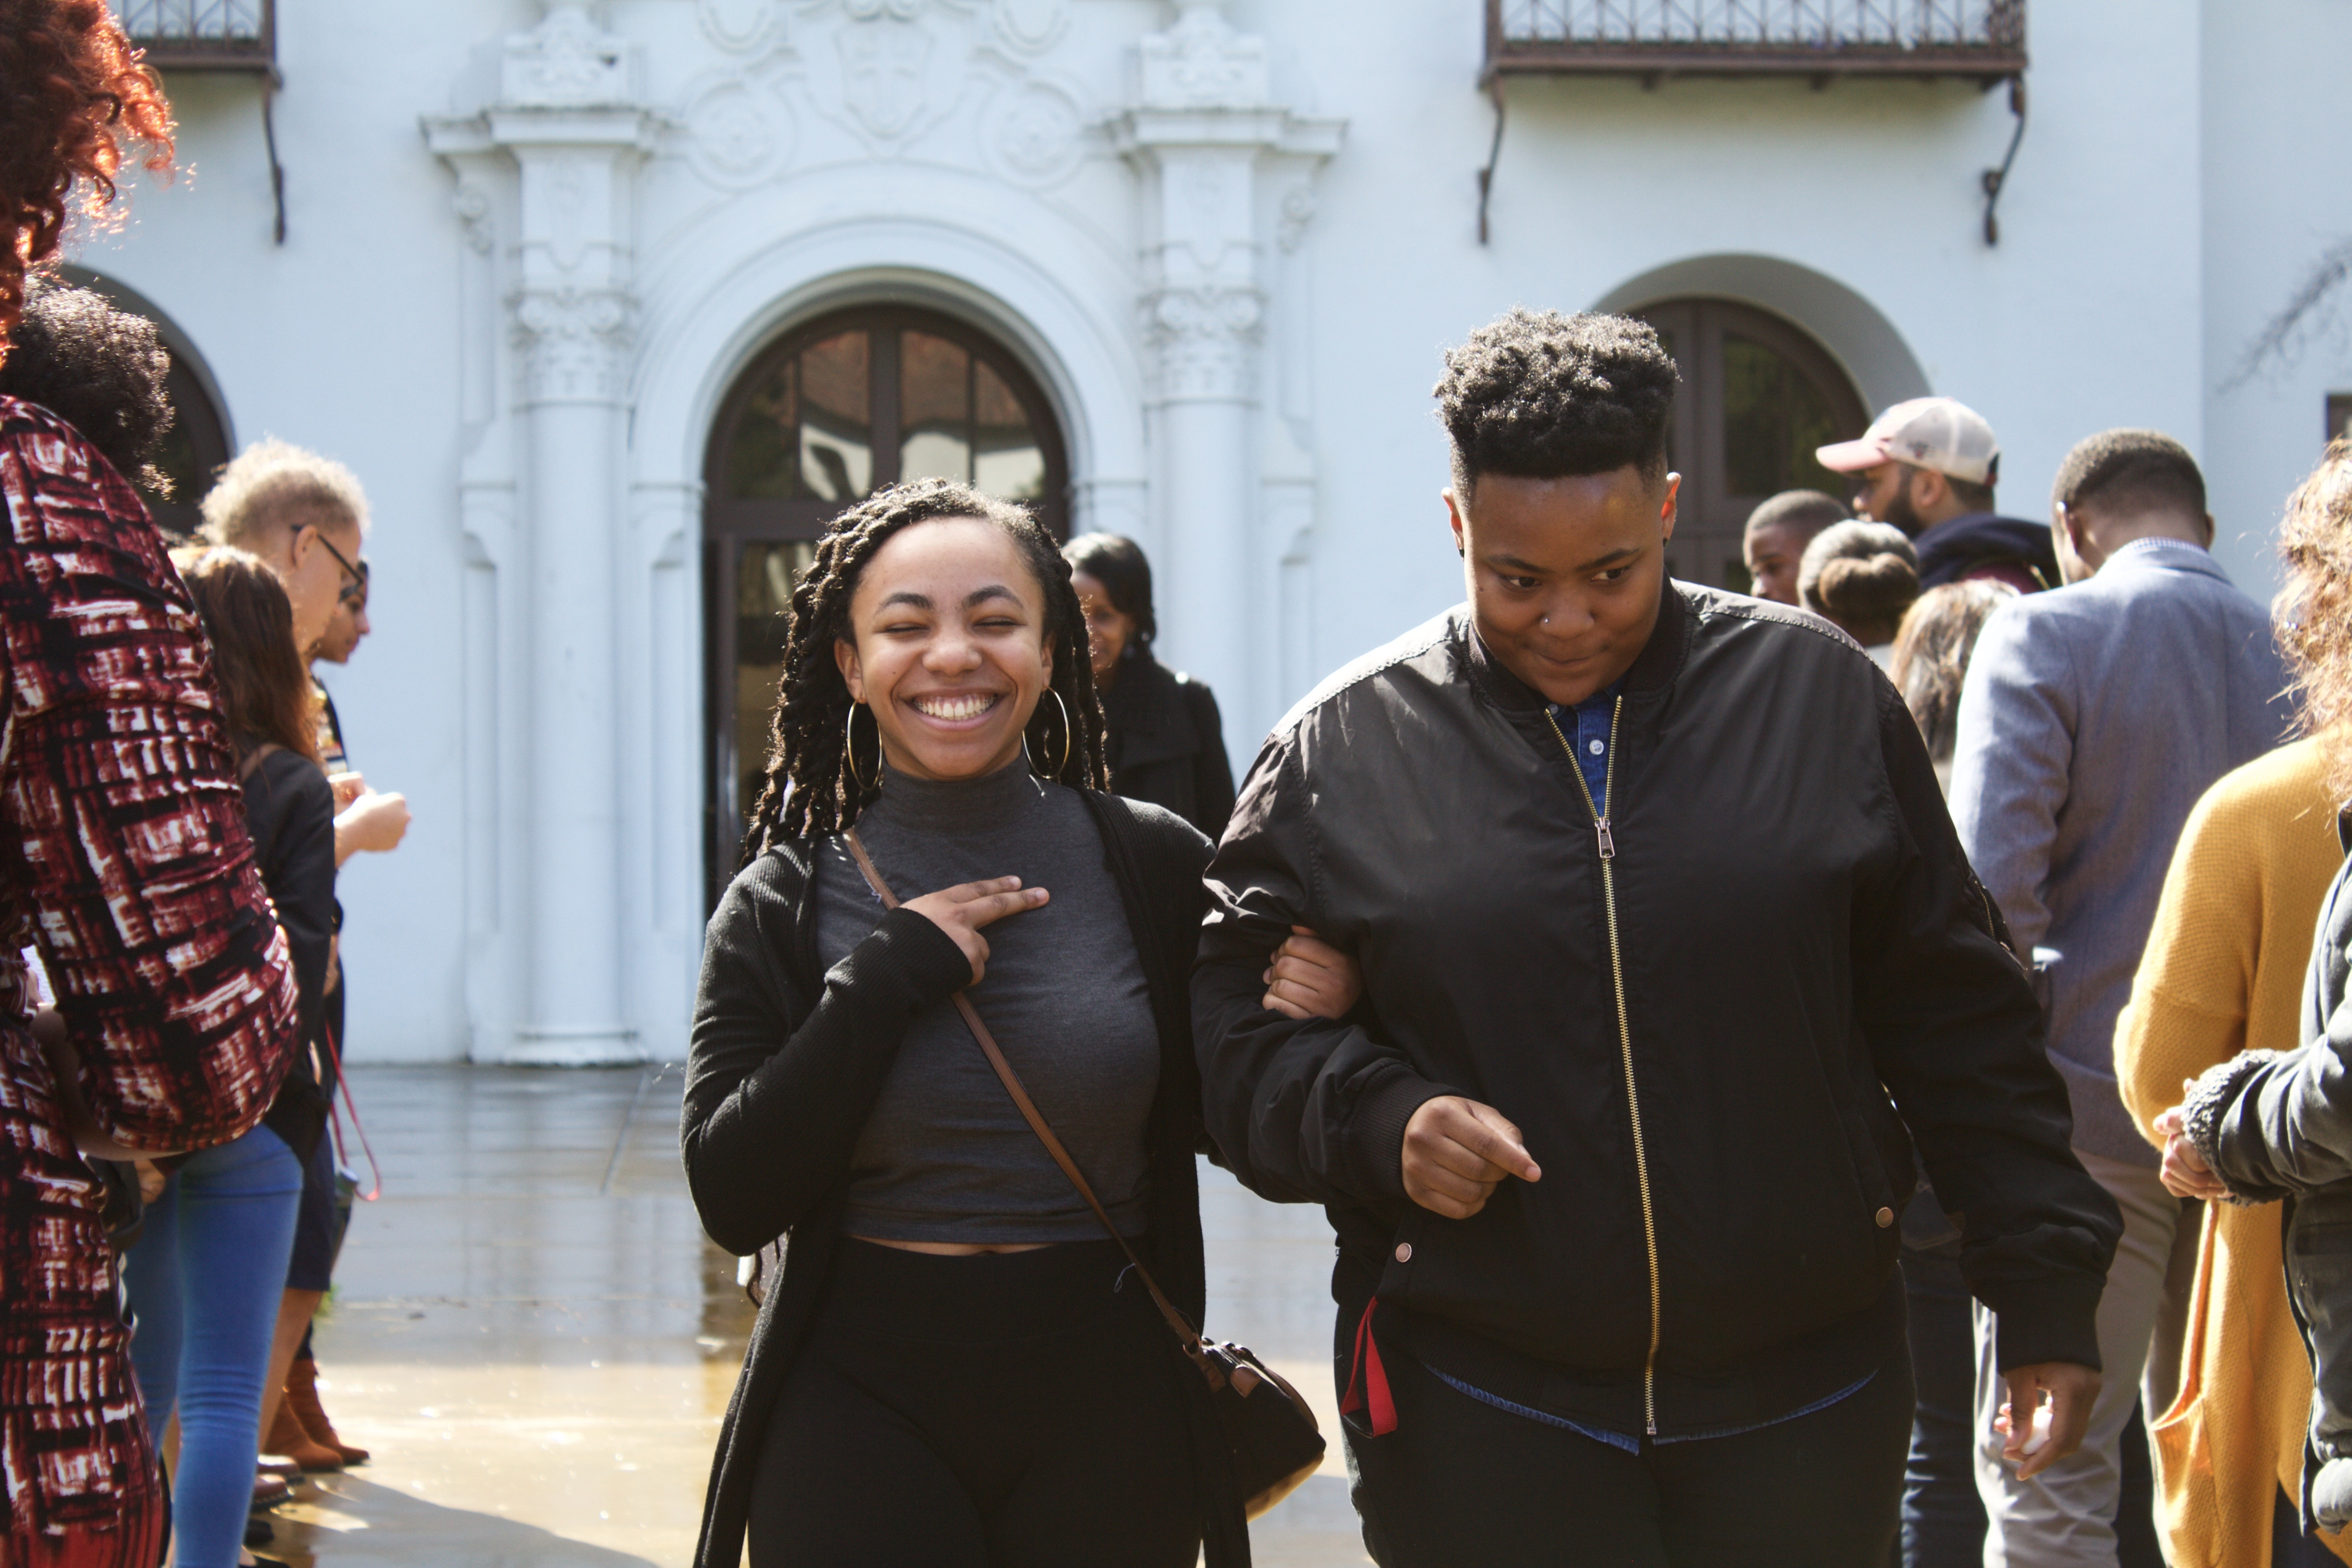 1 student and 1 alum walk hand in hand at Black Convovation